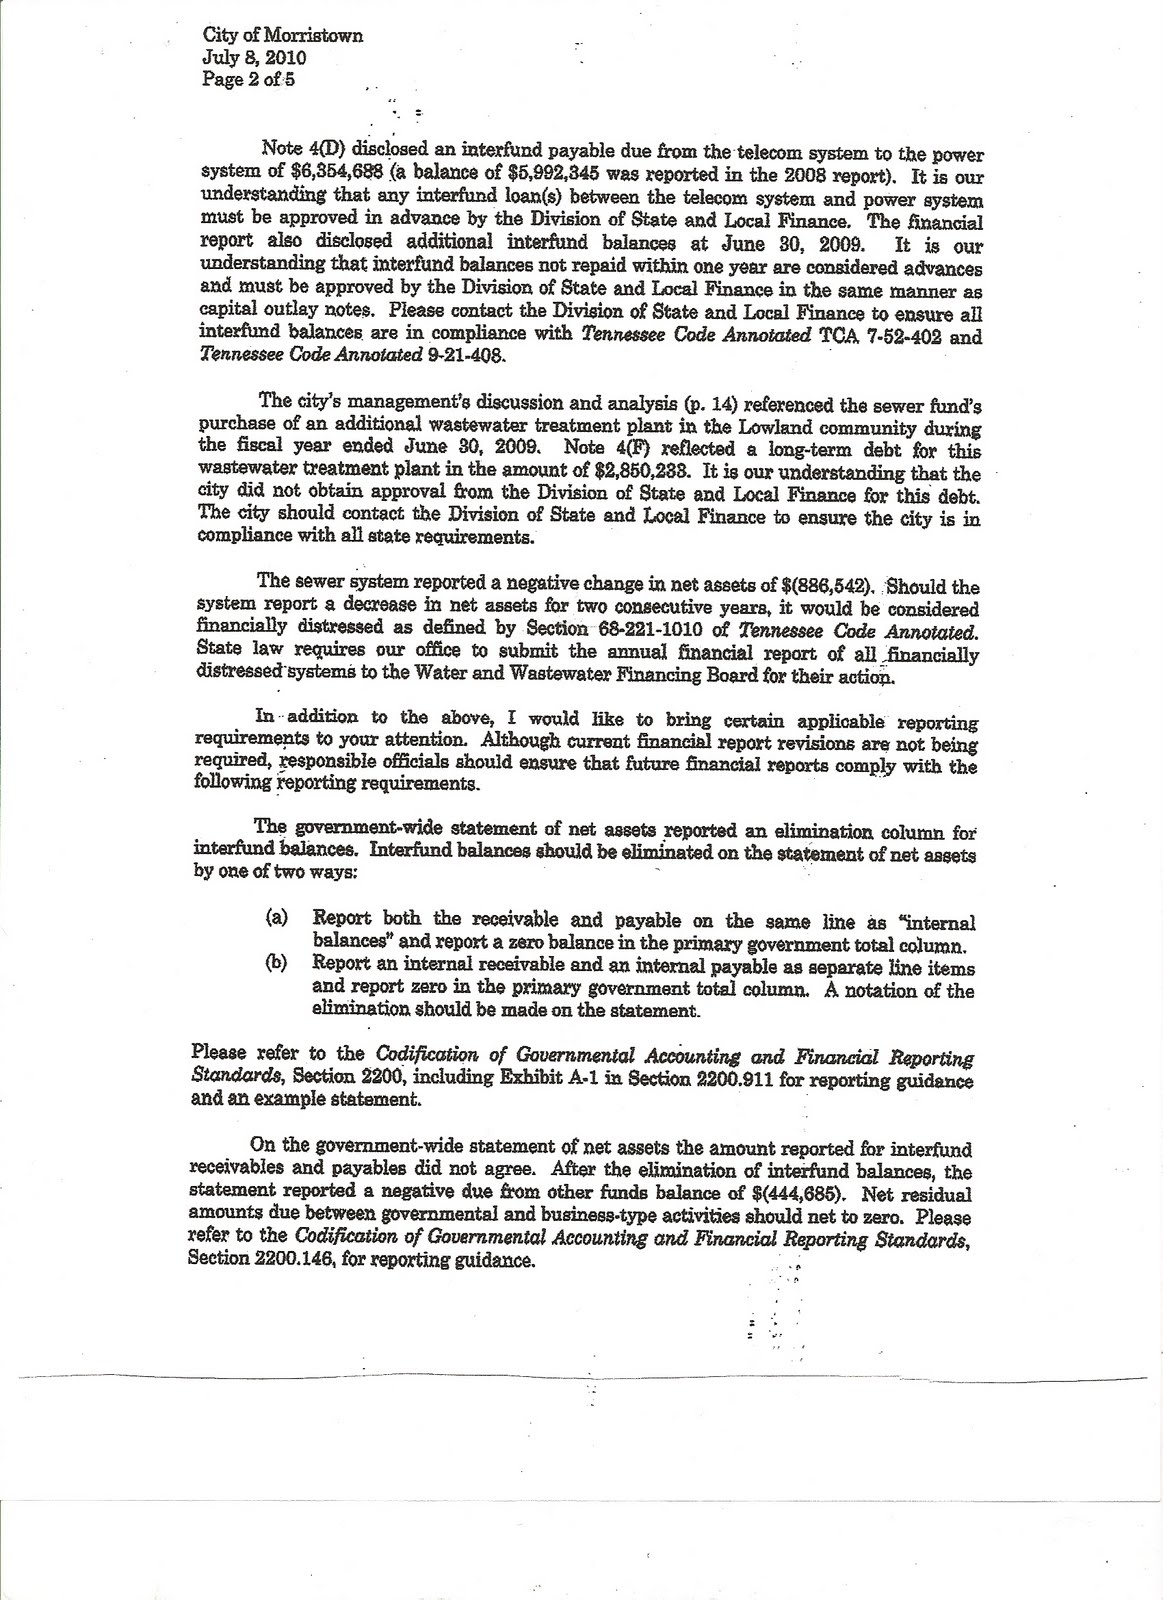 the above letter to the mayor and city council from the state comptrollers office was one item briefly discussed at the councils august 2010 retreat in